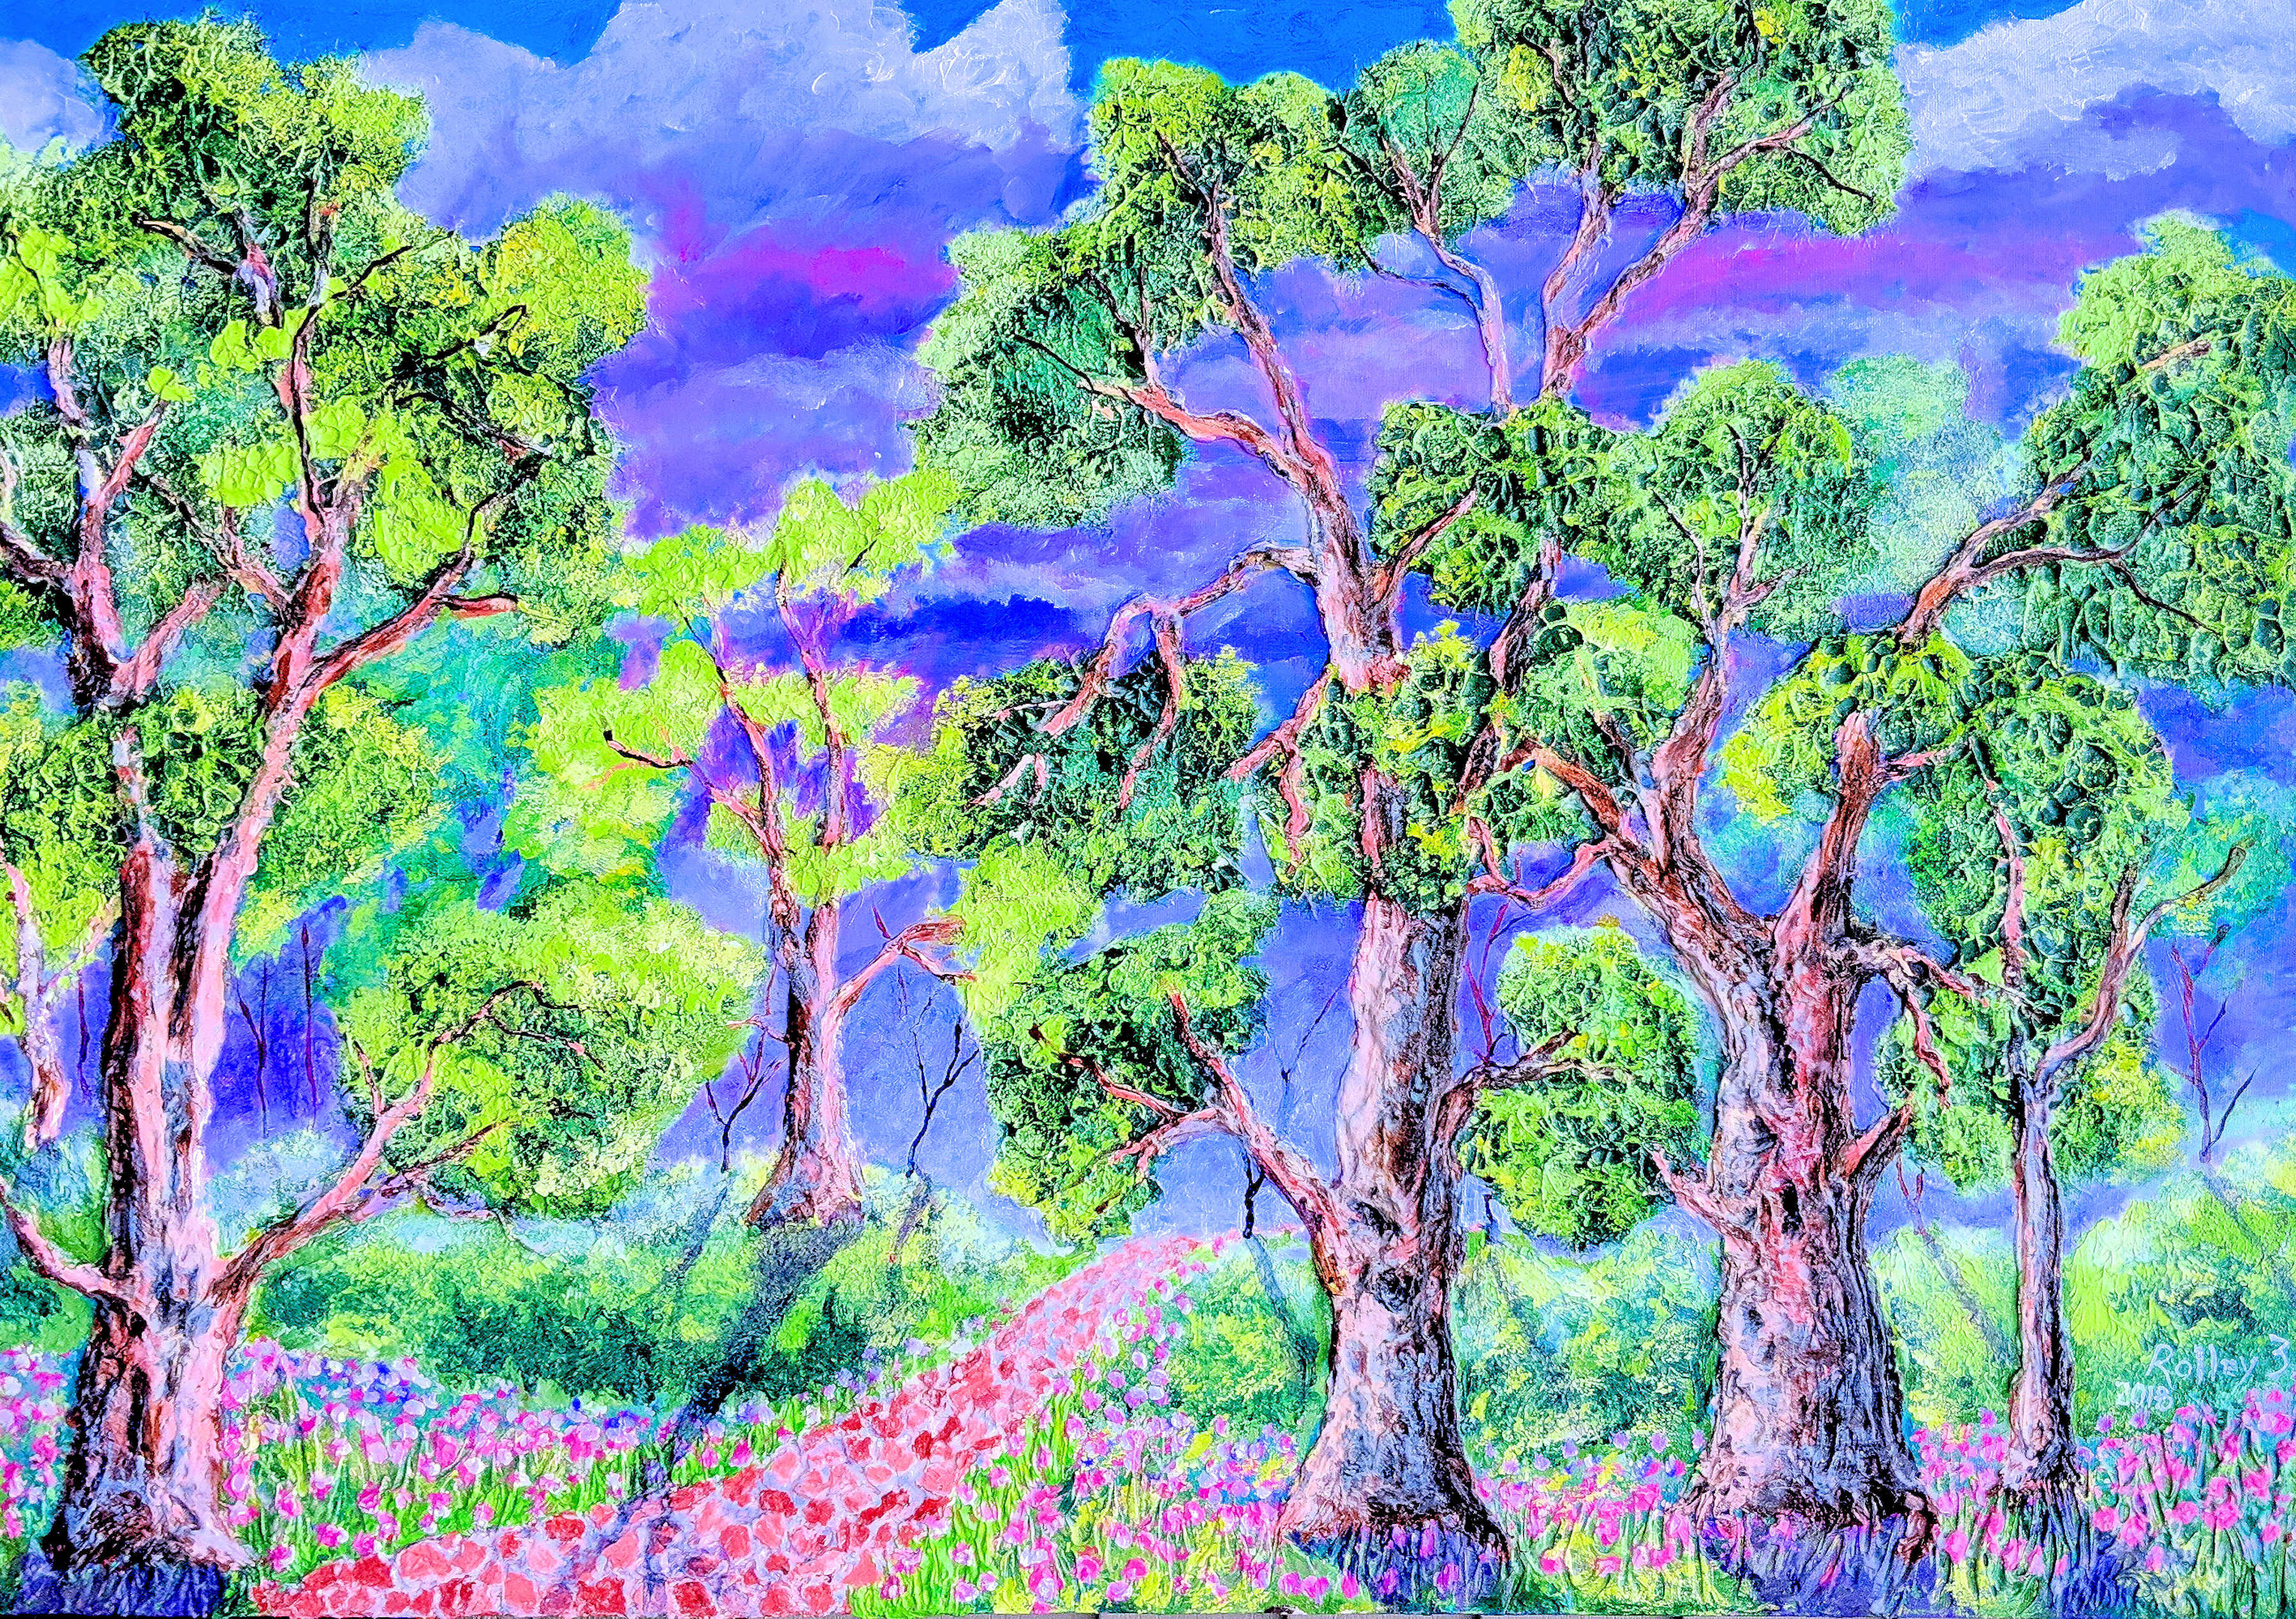 SOFTER WALK   30X40   $800   HIGHLIGHTED WITH GLOW IN DARK LUMINESCENT PAINT